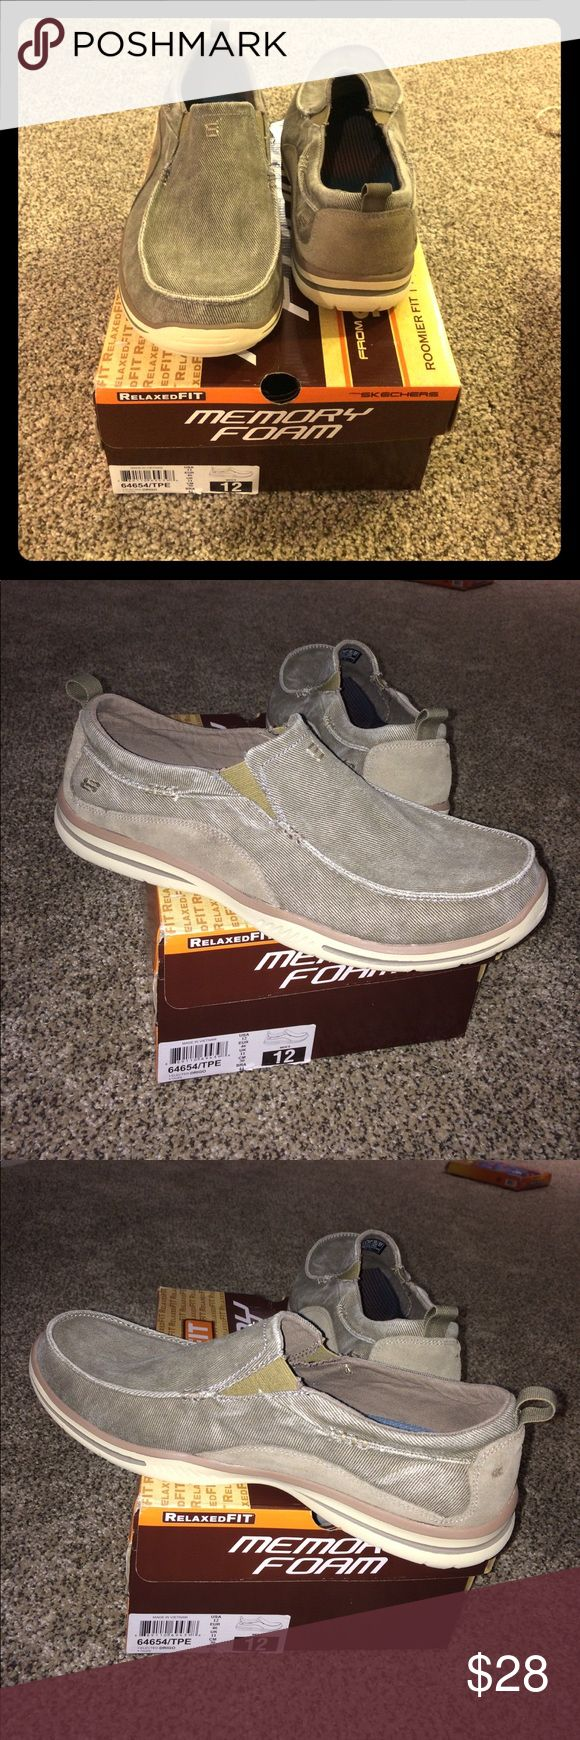 Men's Skechers Memory Foam Relaxed Fit Shoes NIB Men's Skechers Memory Foam Relaxed Fit Shoes NIB. Brand new with box. Air cooled memory foam inner sole. Size 12. Canvas outter with stretch points on the side of the top. Skechers Shoes Loafers & Slip-Ons